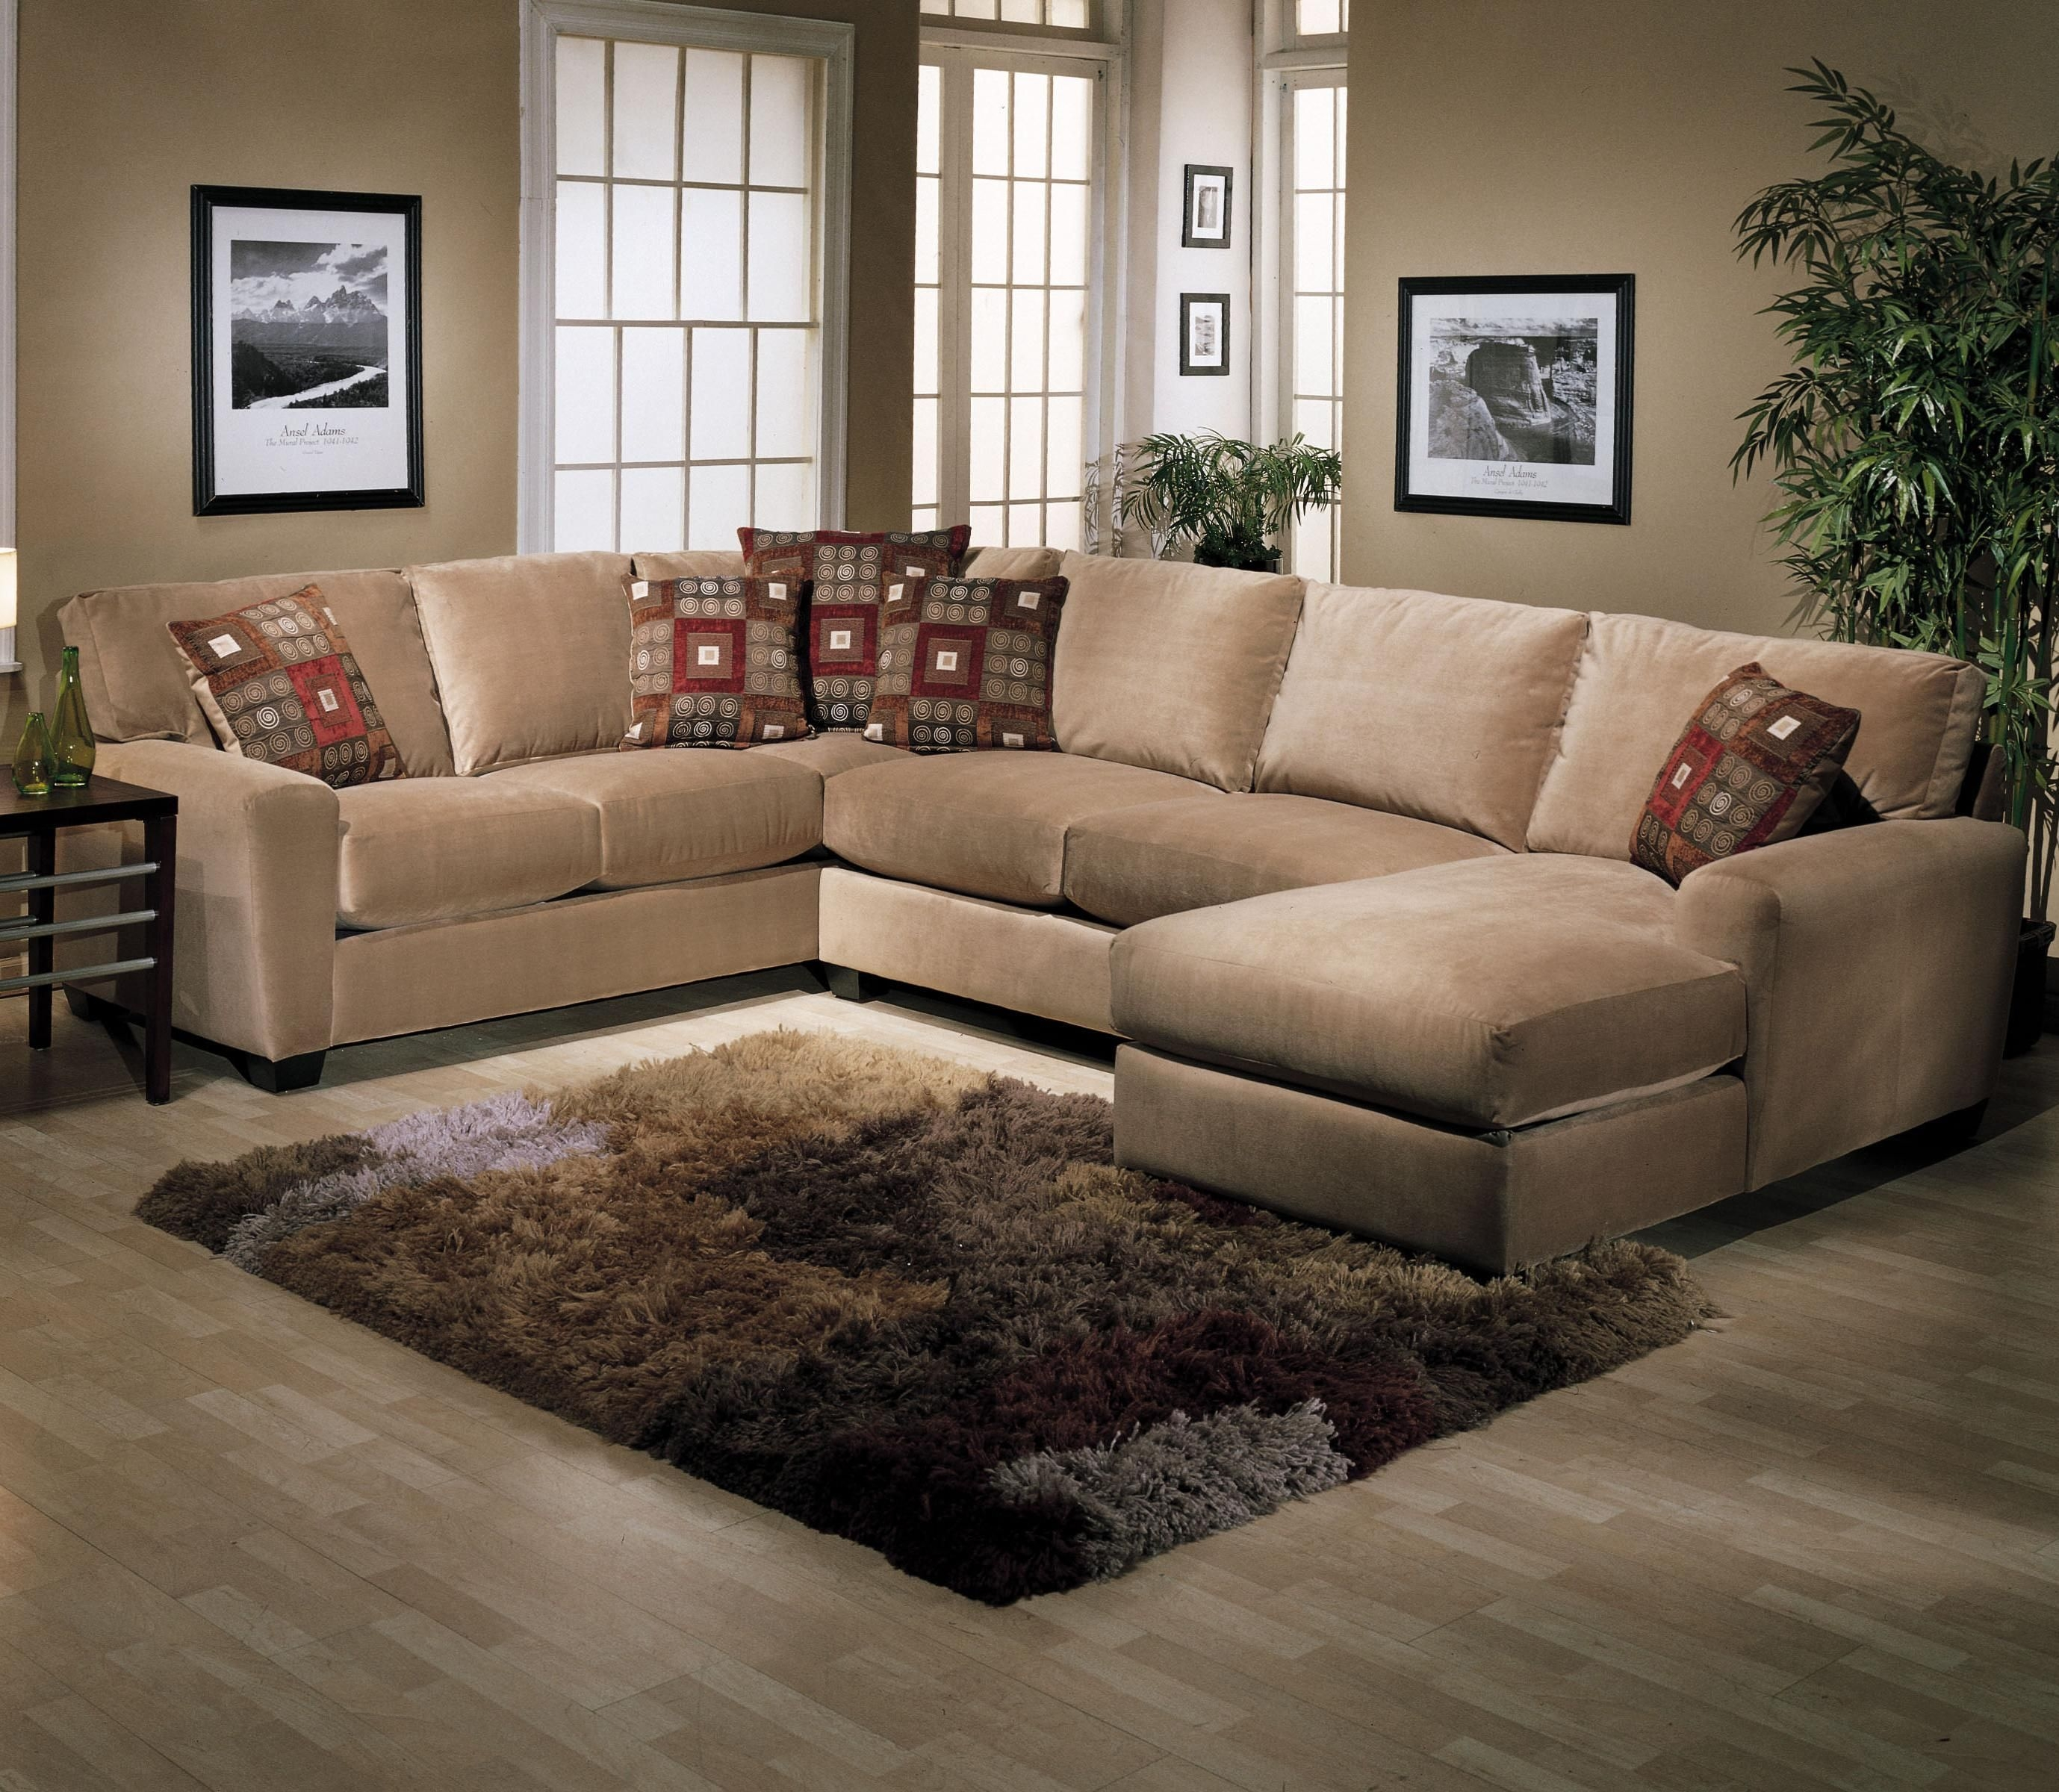 Beck'S Furniture  Benson Lshape Sectional With Chaise Loungejonathan Louis Love It Looks